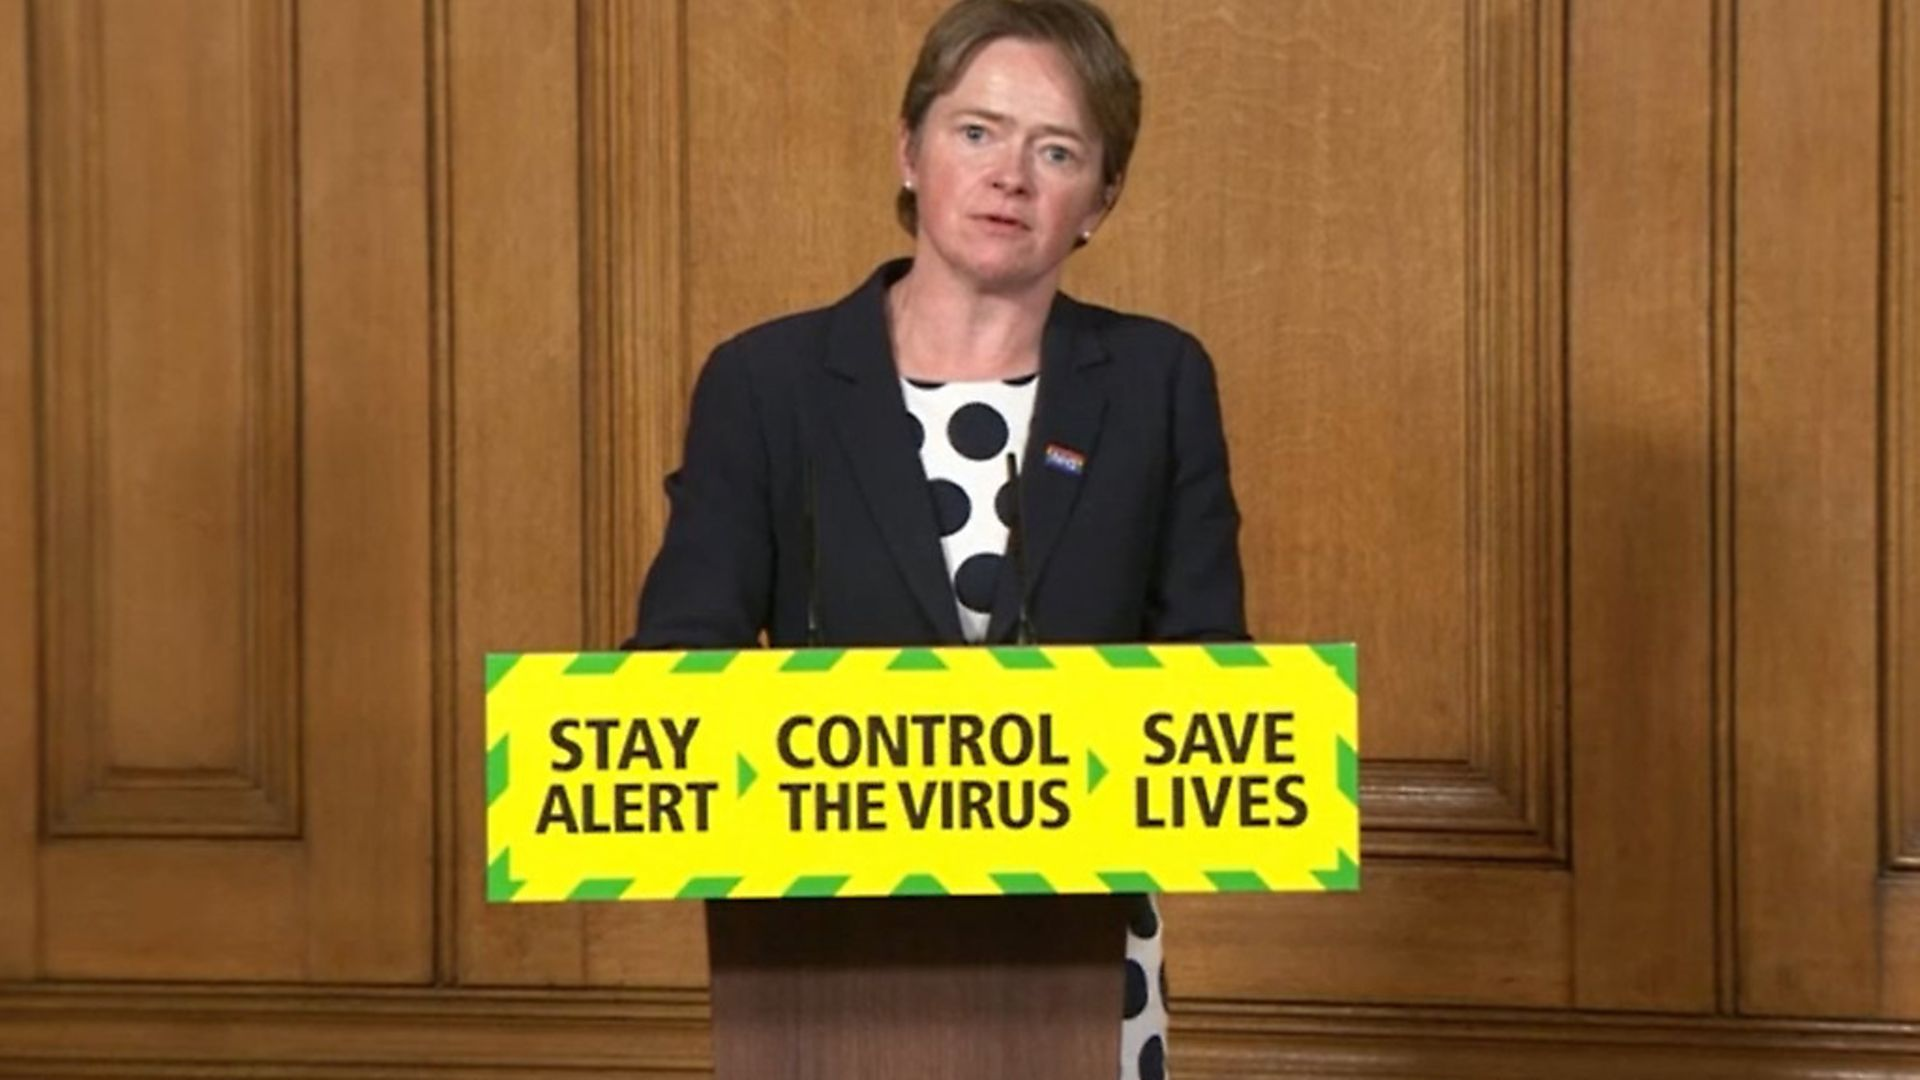 Baroness Dido Harding, executive chairwoman of NHS Test and Trace, during a media briefing in Downing Street, London, on coronavirus (COVID-19). Photograph: PA. - Credit: PA